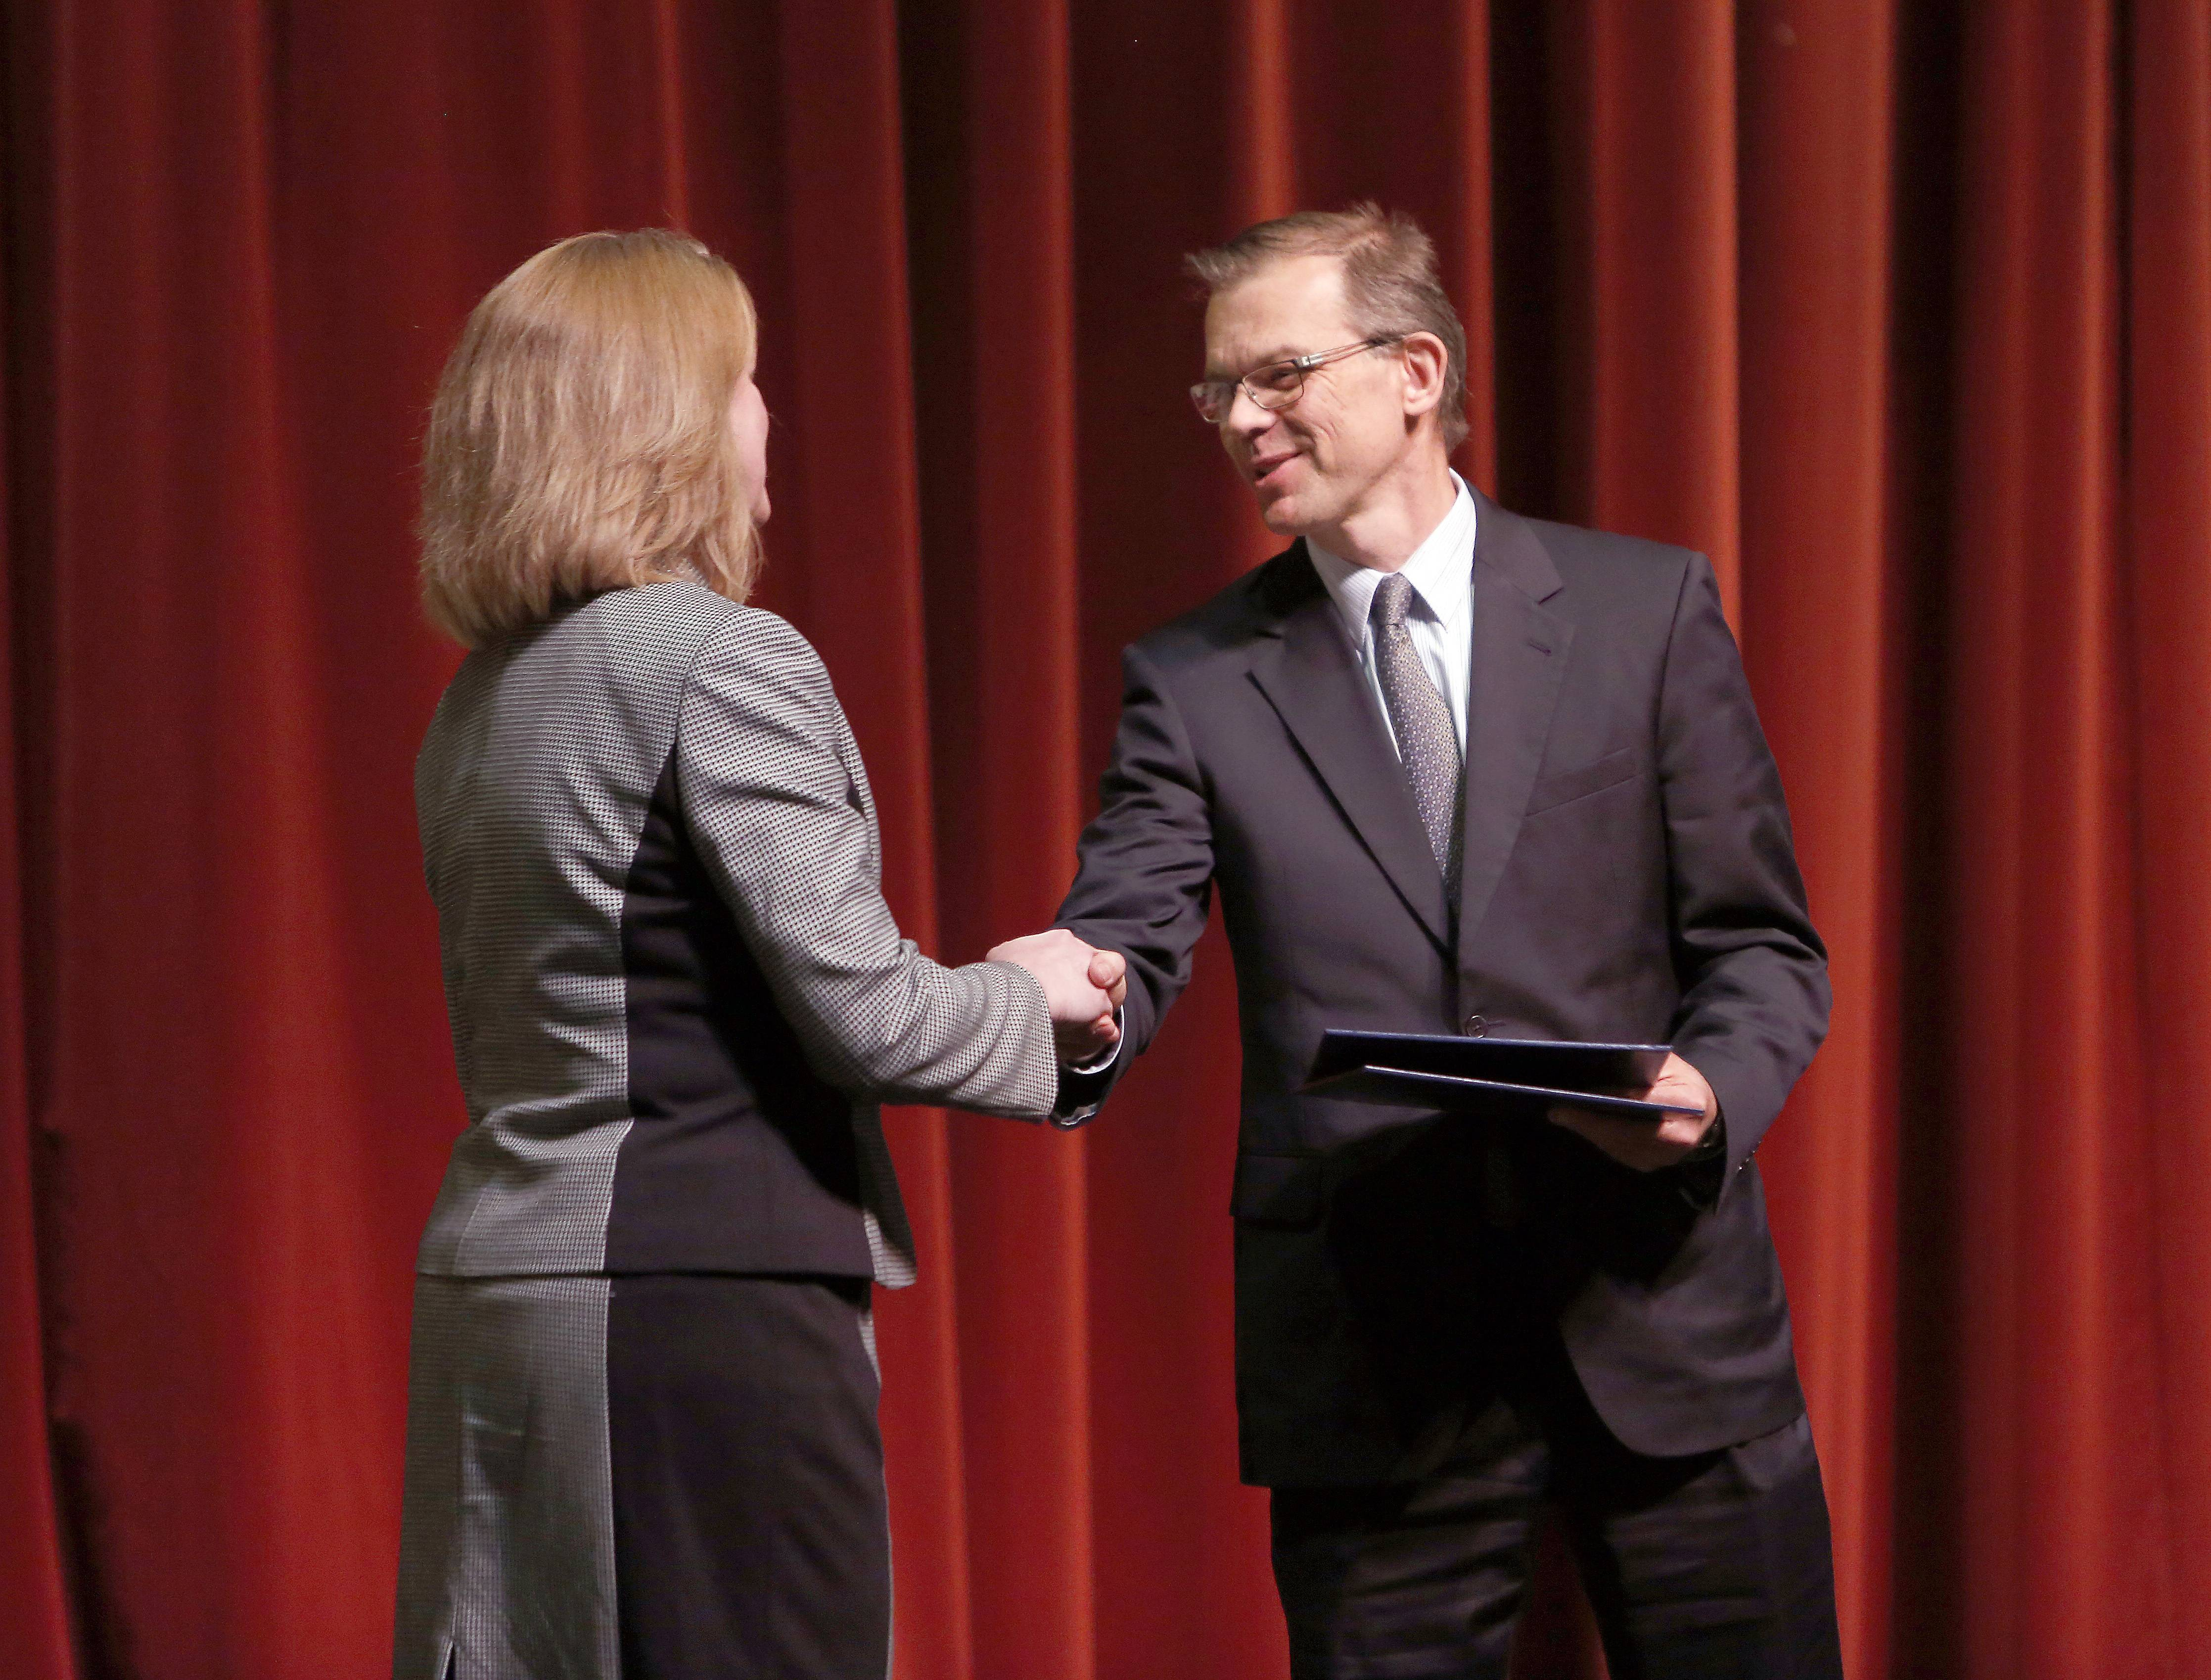 Kaneland High School Principal Jill Maras receives an award Thursday from Illinois state school Superintendent Christopher Koch. Nicholson Elementary School in Montgomery and Kaneland High School in Maple Park received Academic Improvement awards and are on the 2013 Illinois Honor Roll.